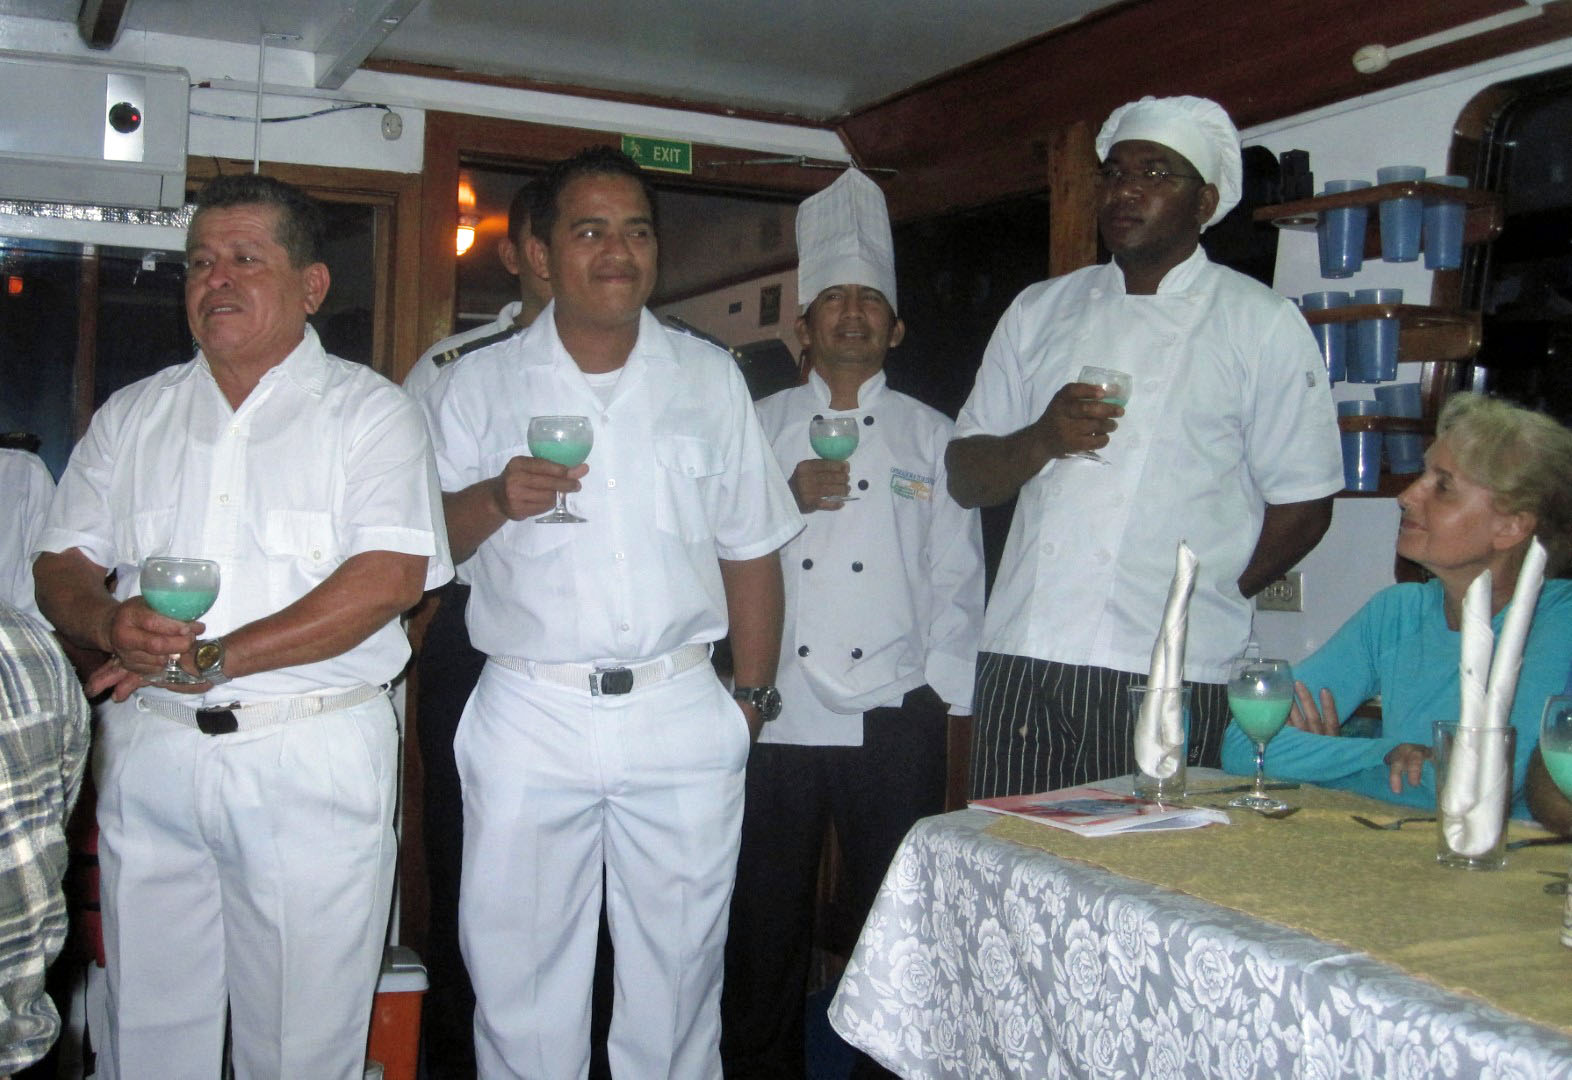 Men in white uniforms with drinks